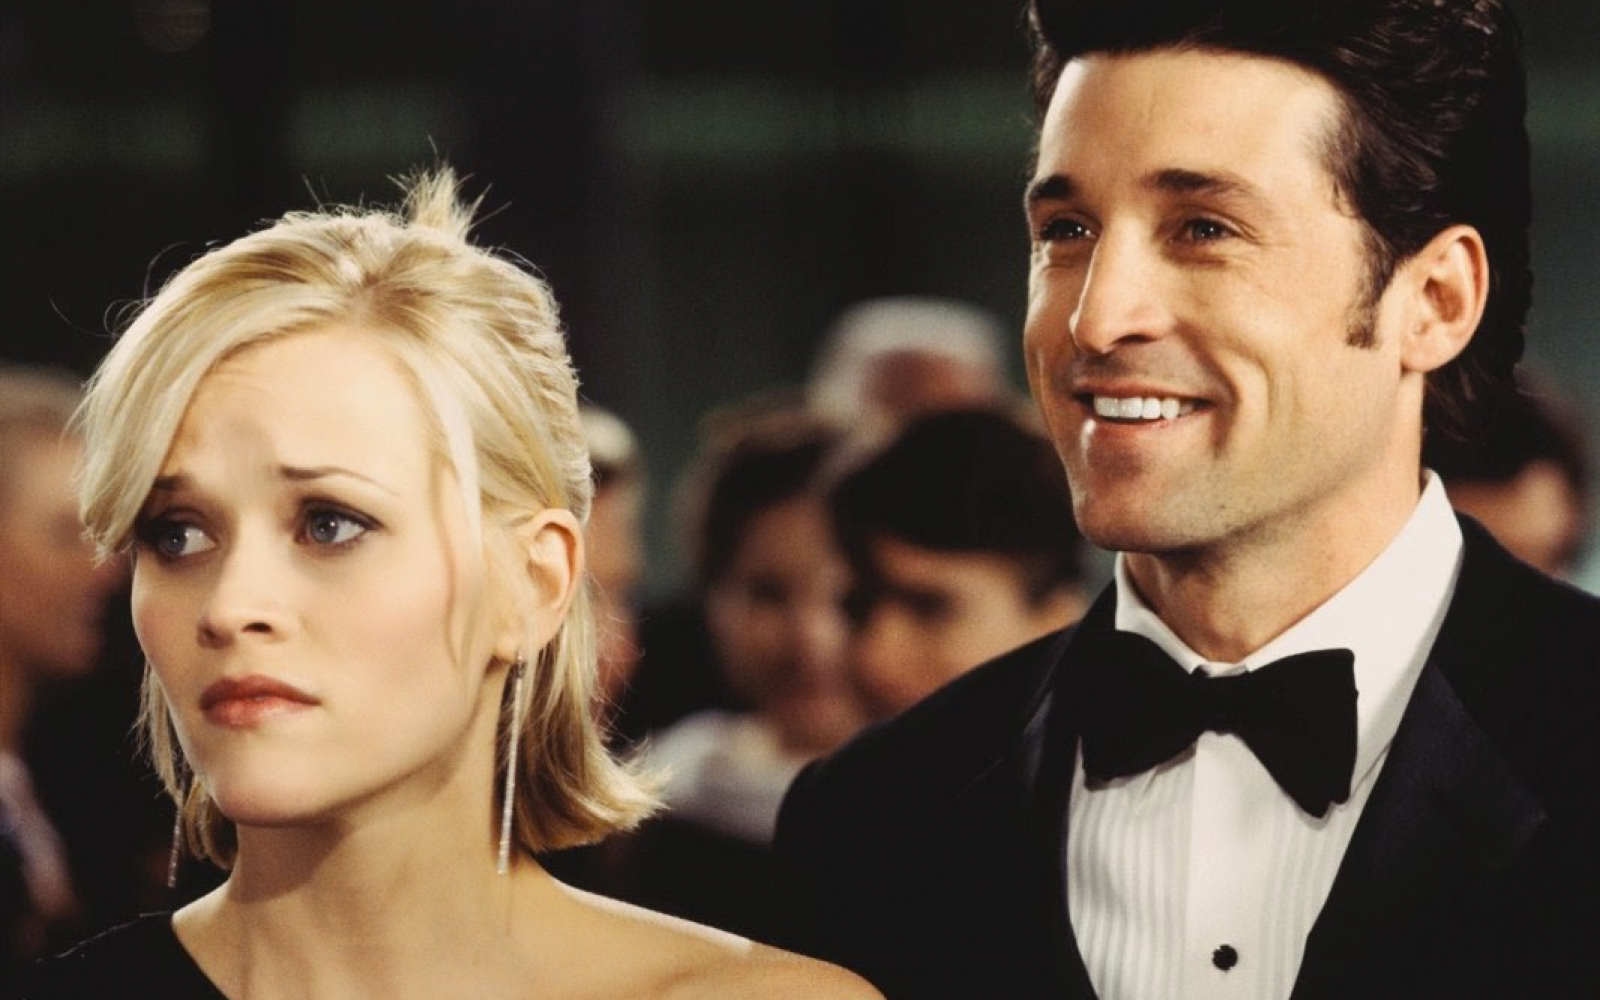 11 Quotes From 'Sweet Home Alabama' That Define The Beauty Of A First Love That Was Never Lost